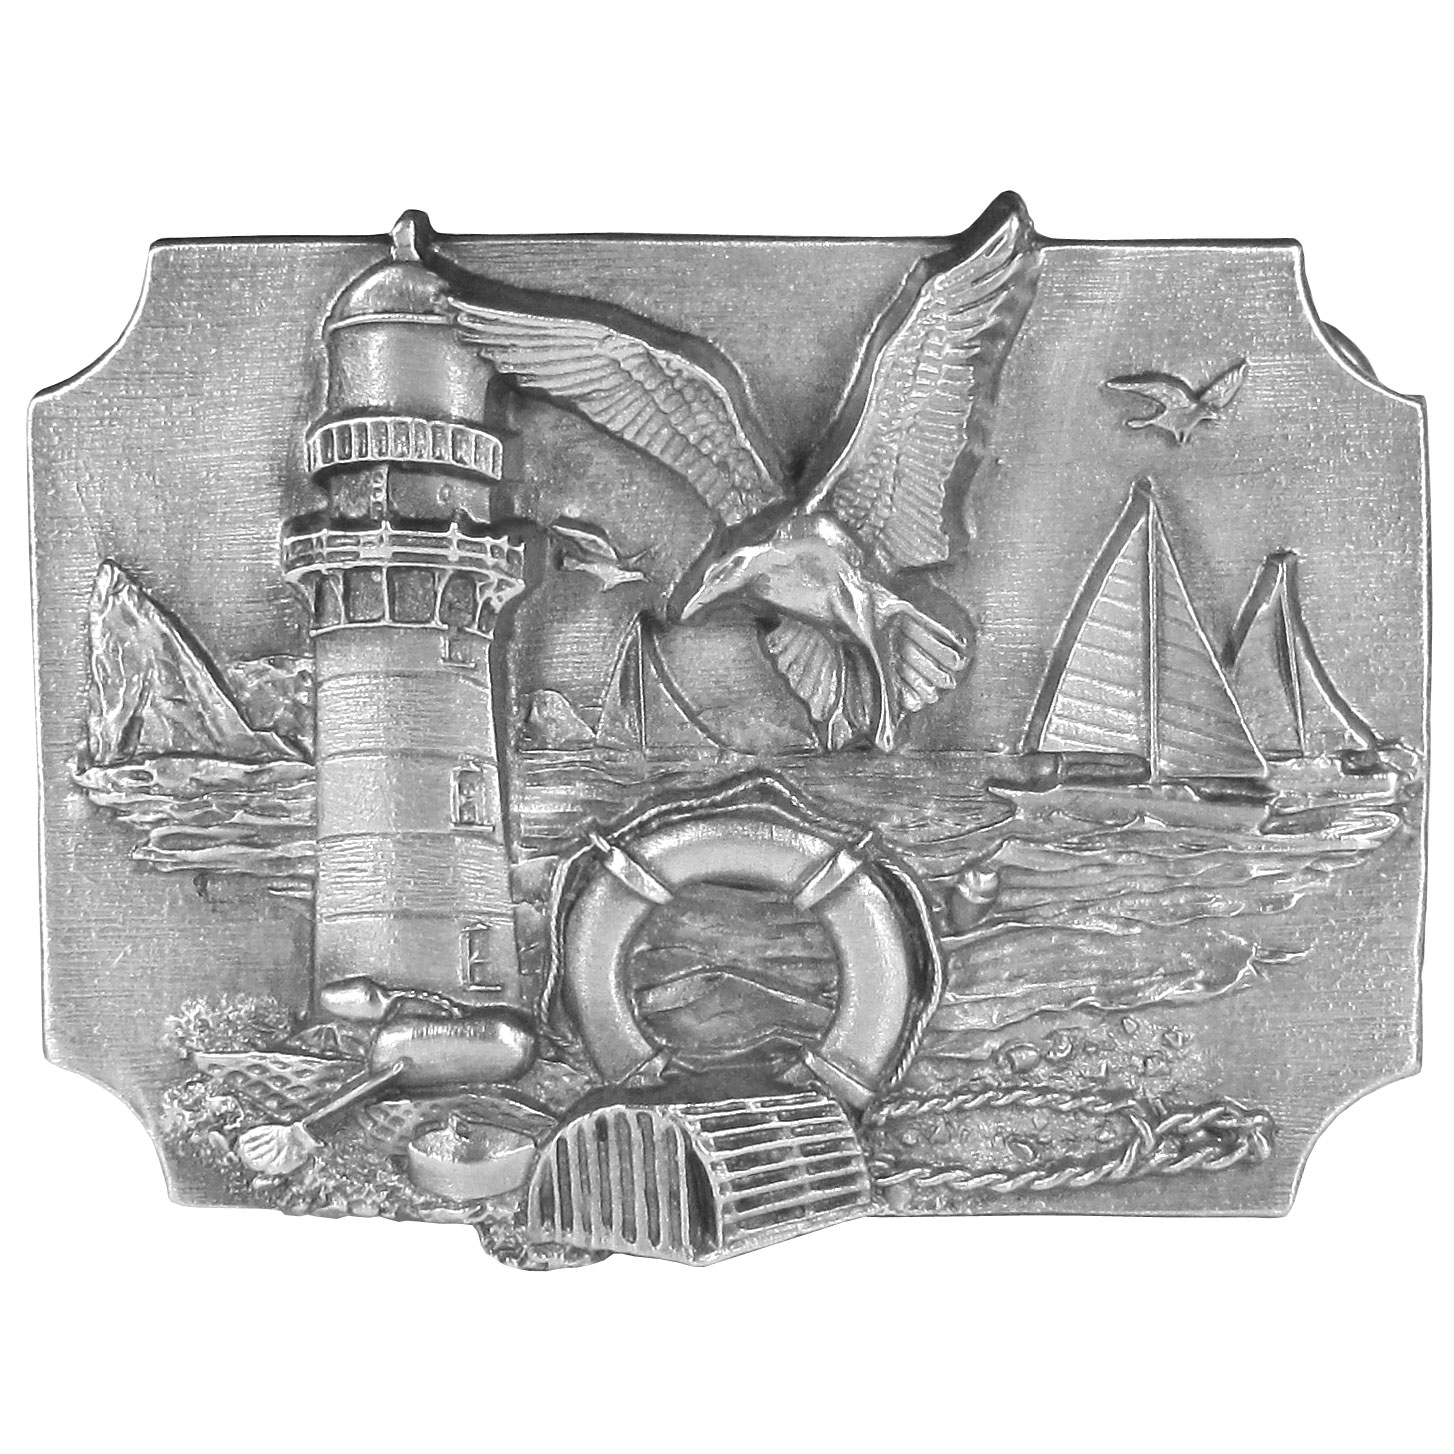 "Coastal Scene Antiqued Belt Buckle - ""This belt buckle featues an idyllic ocean scene with a seagull landing next to a lighthouse, a bouy, a lobster trap, a barbecue pit with a pan and spatula, seagulls flying through the sky and sailboats in the ocean. On the back are the words, """"A bad day of fishing is better than a good day working."""" This exquisitely carved buckle is made of fully cast metal with a standard bale that fits up to 2"""" belts. Siskiyou's unique buckle designs often become collectors items and are unequaled with the best craftsmanship."""